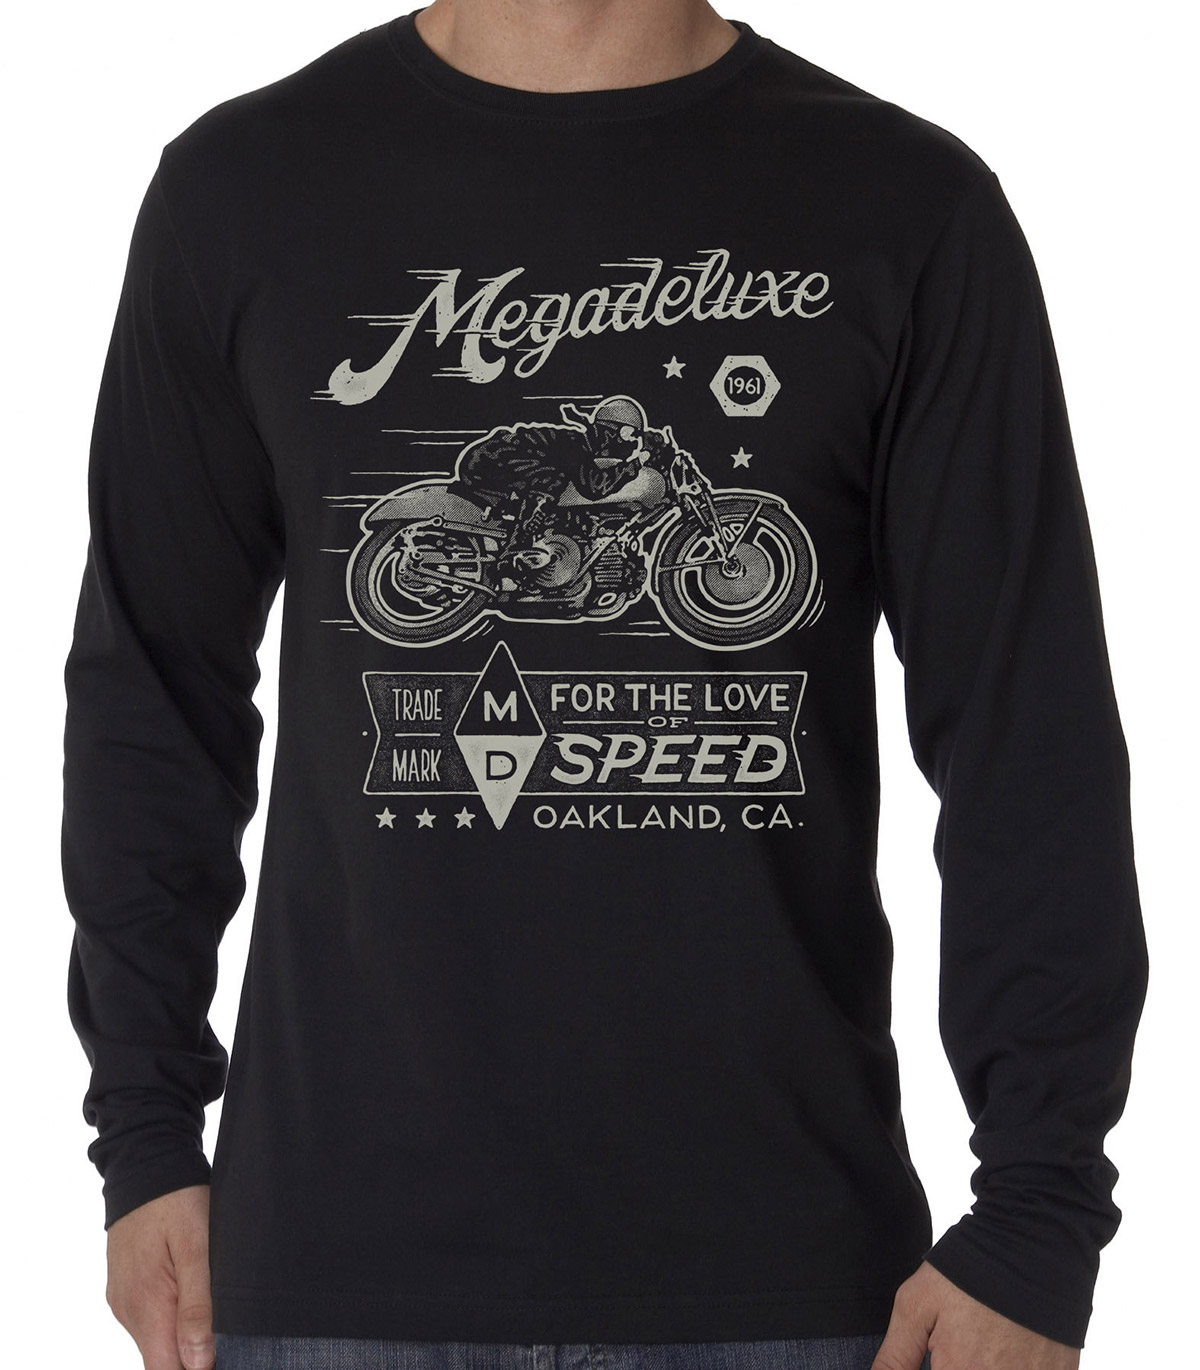 Limited-edition Megadeluxe T-shirt